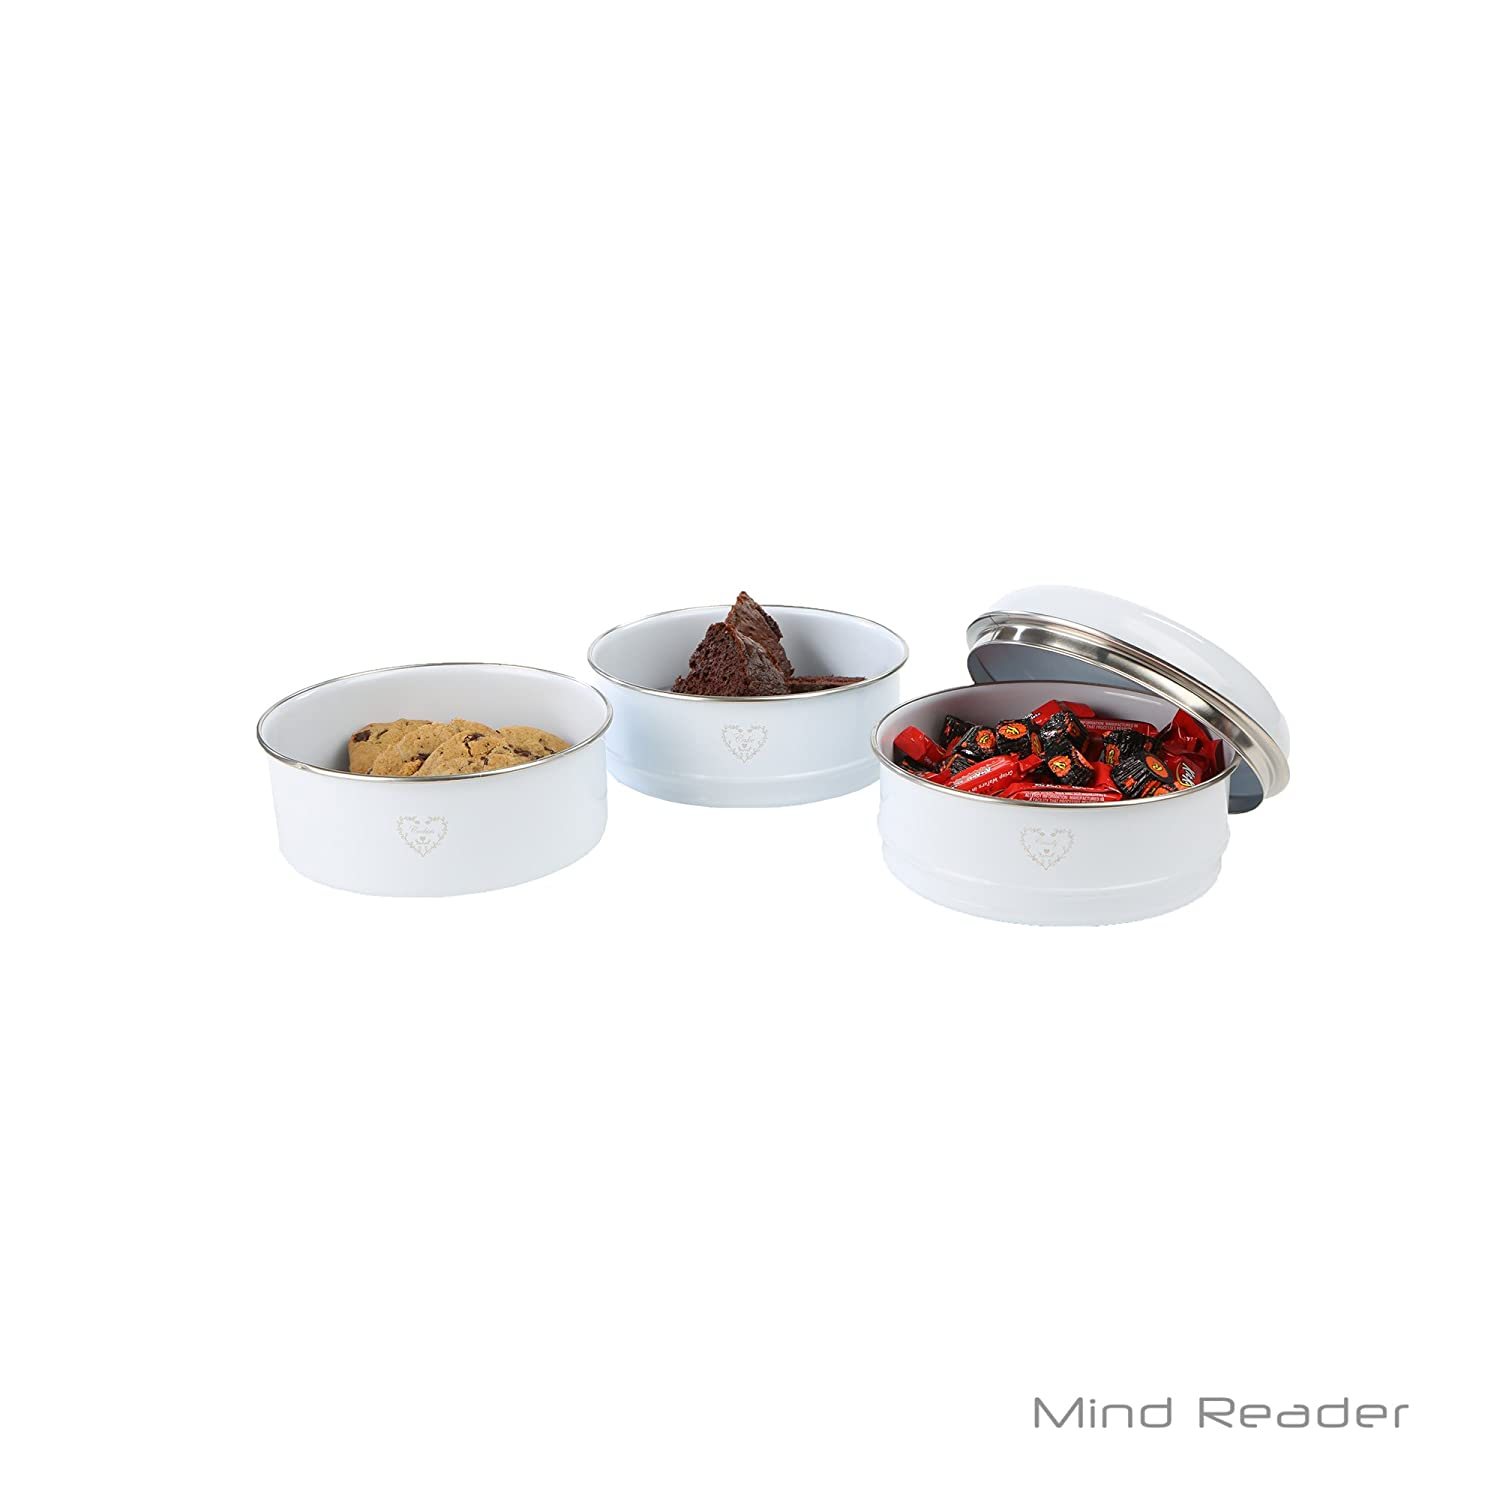 Mind Reader CANSTACK3-WHT 3 Piece Stacking Canister Set White